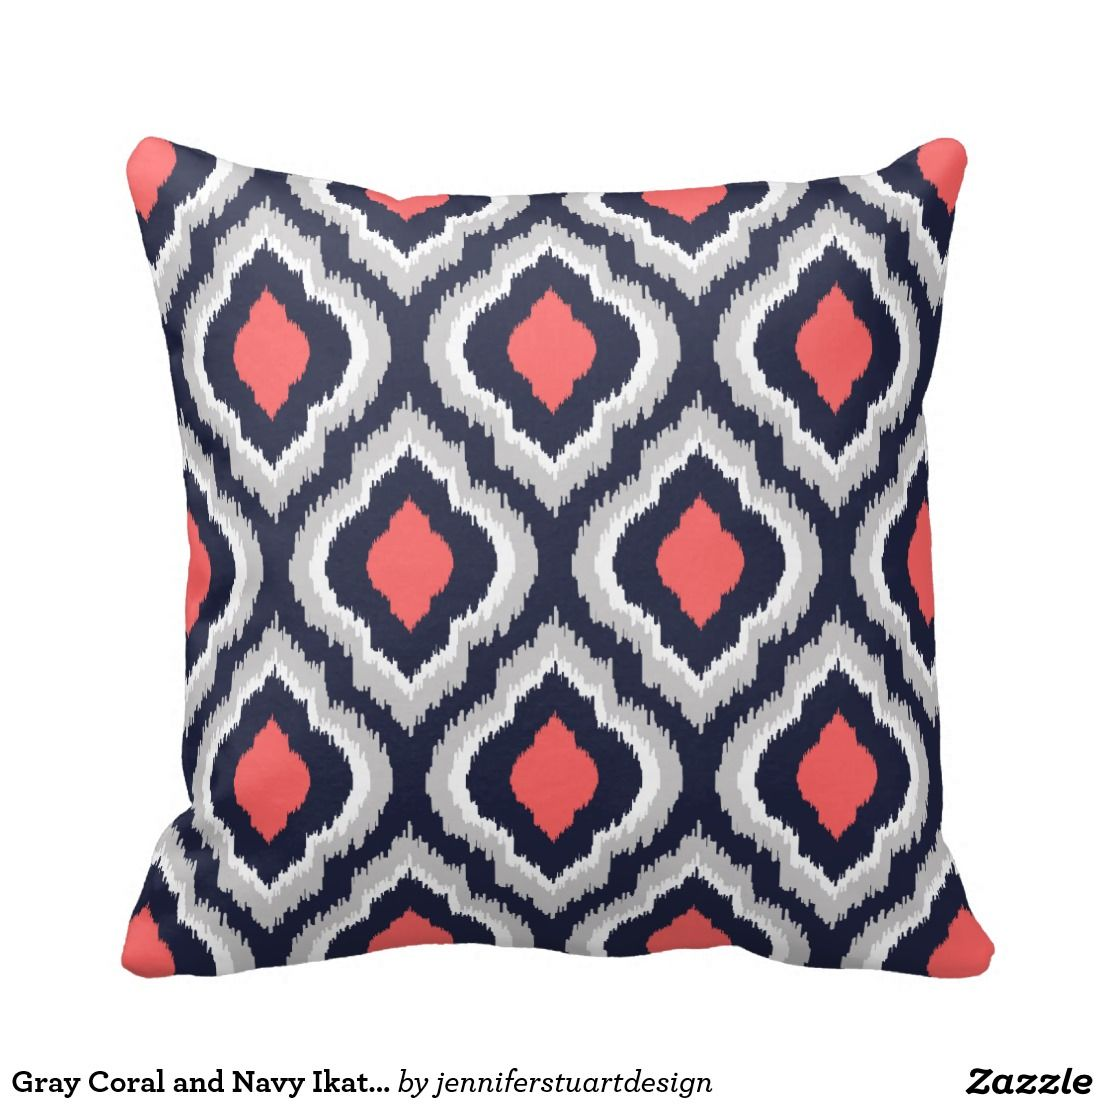 company monogrammed monogram pillow mimzy applique pillows